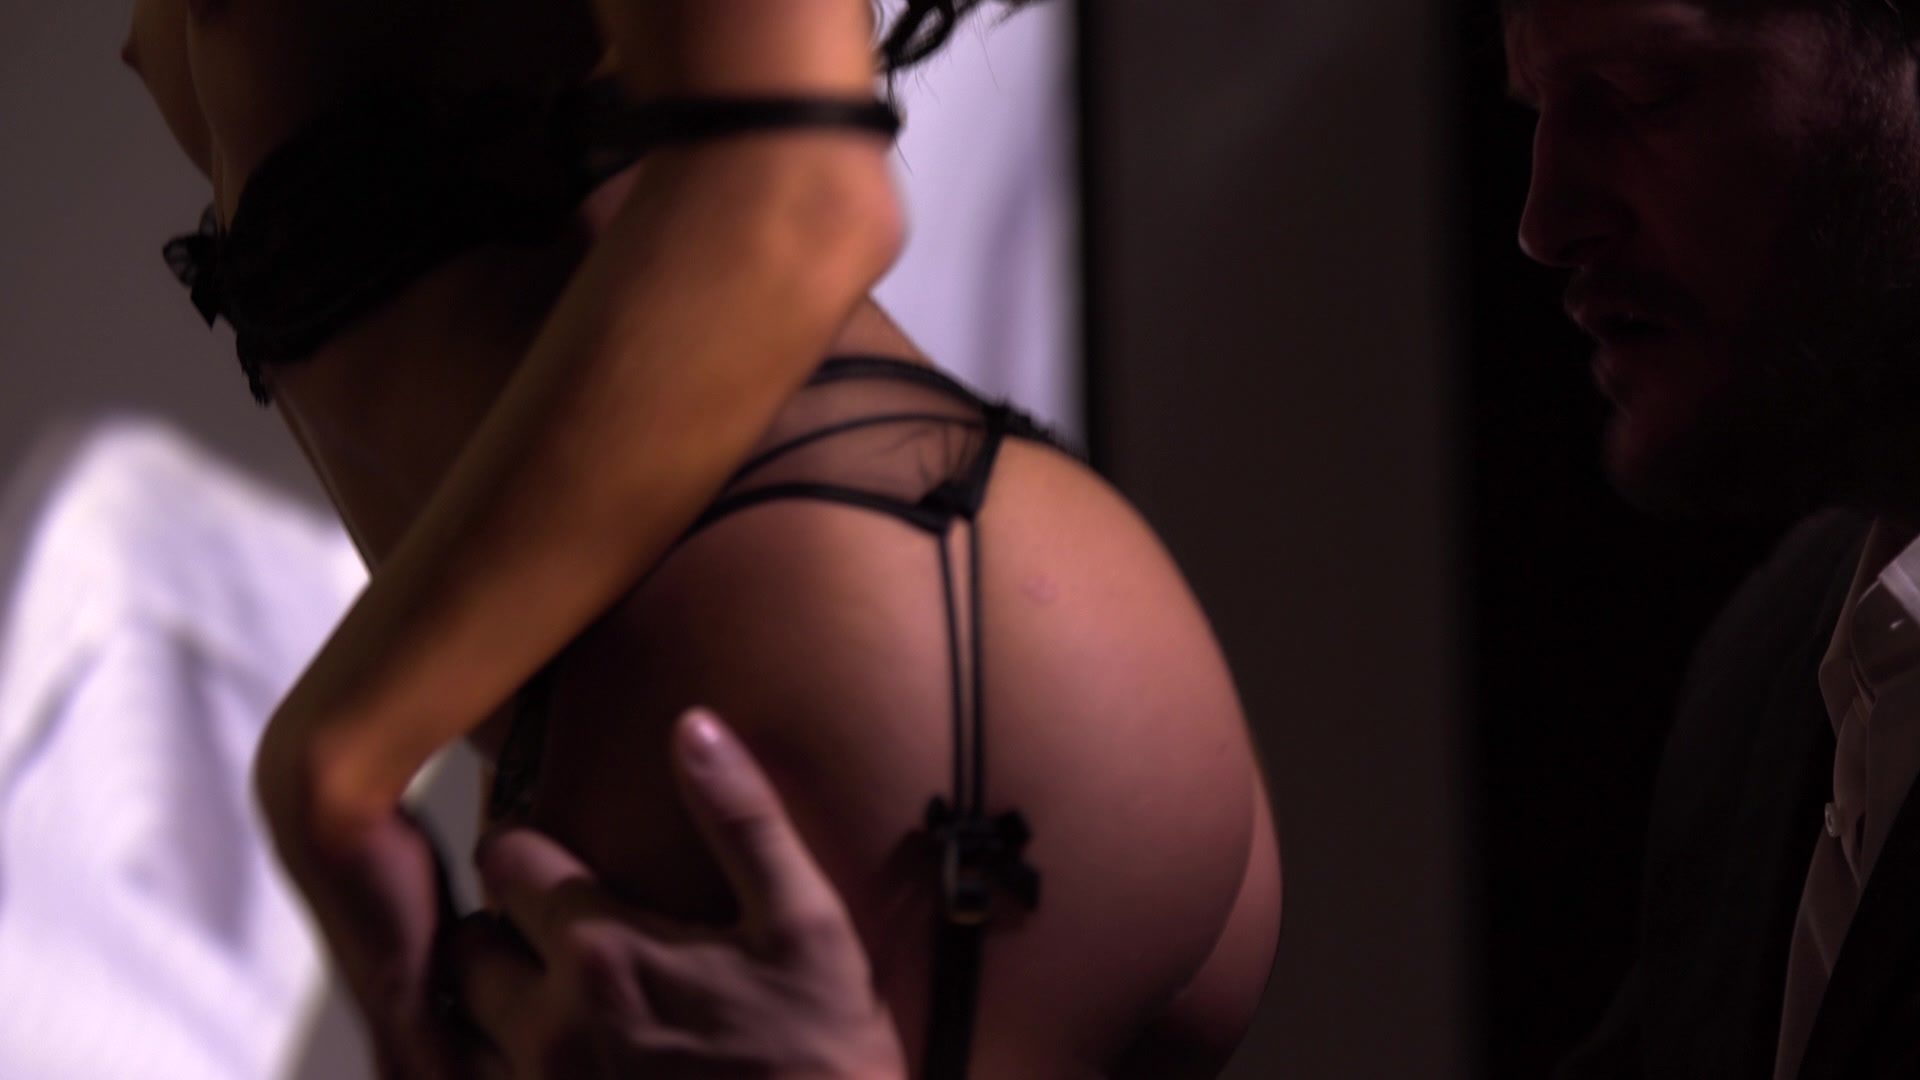 Scene with Megan Rain - image 7 out of 20